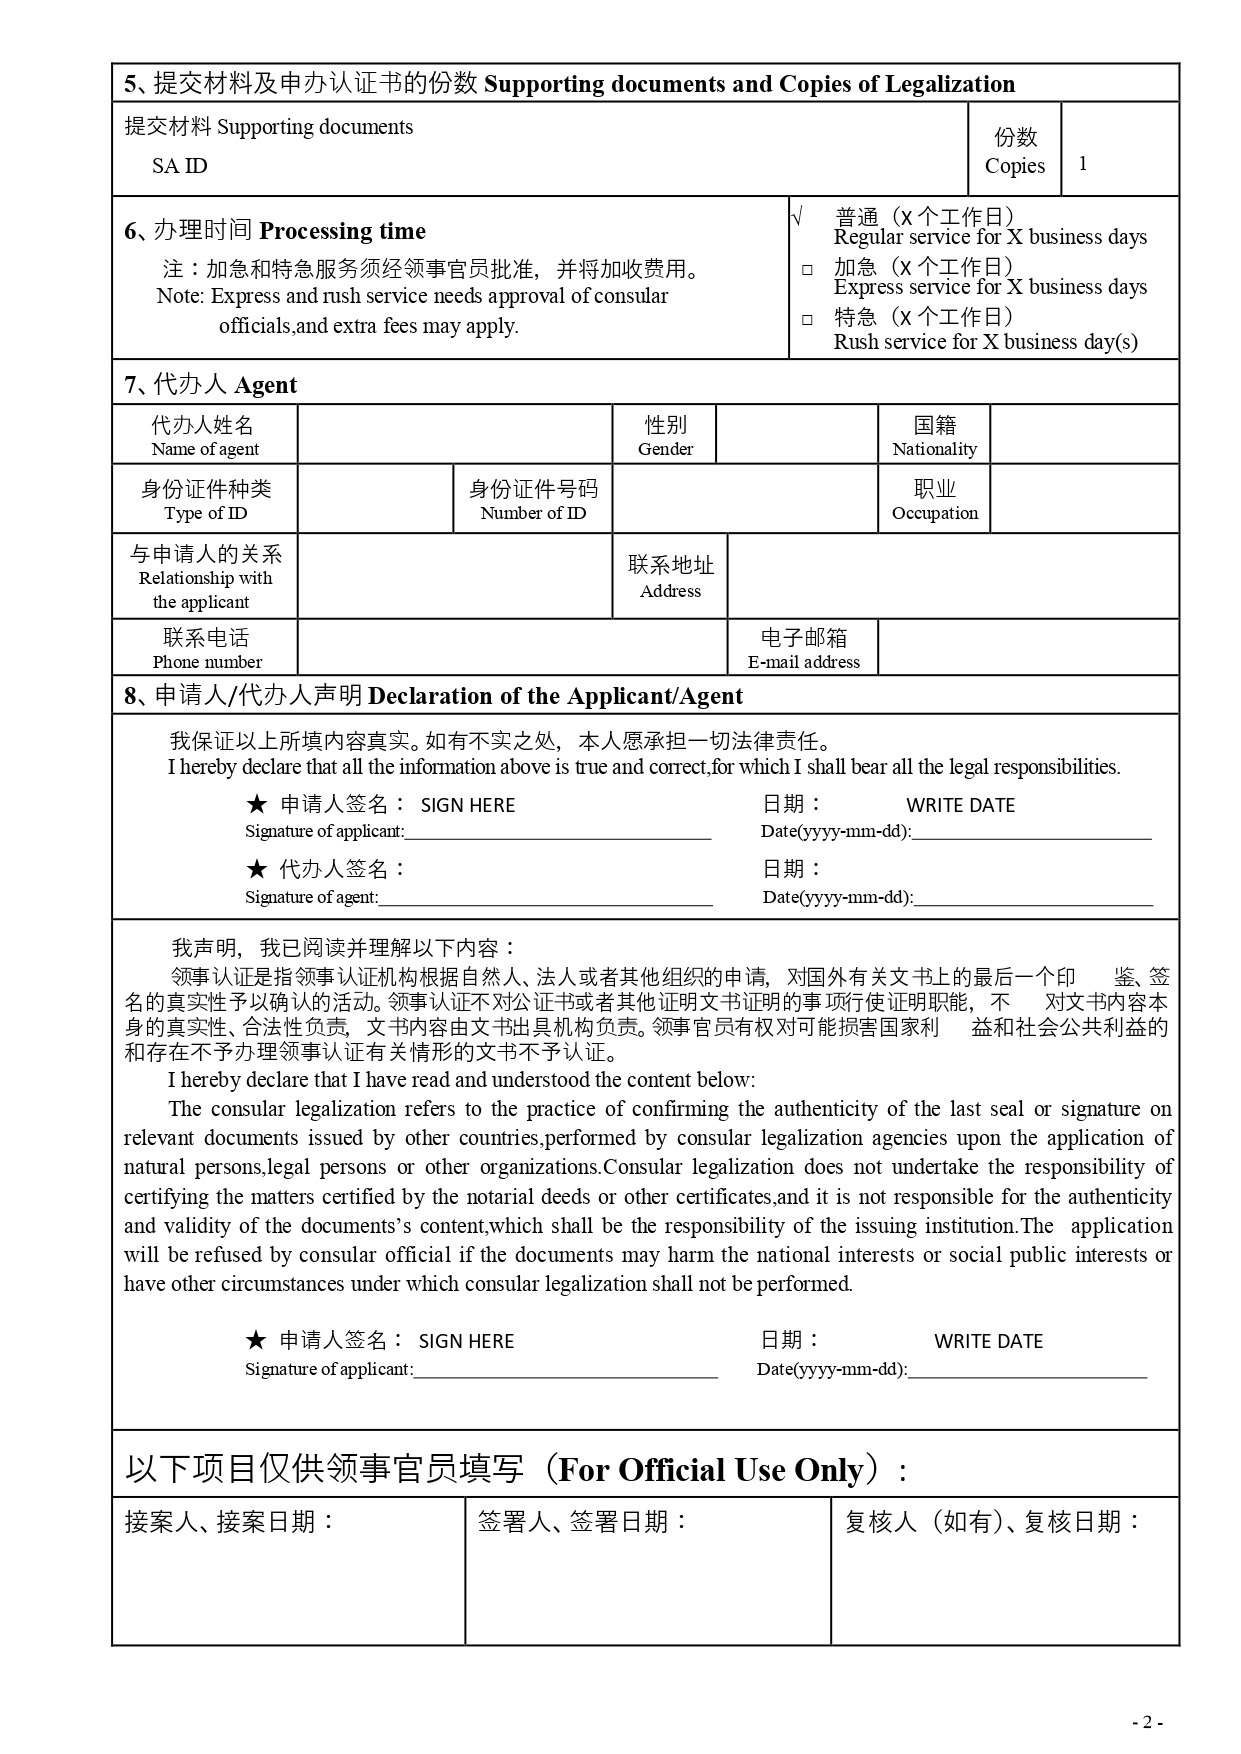 chinese embassy authention form-converted_page-0002.jpg